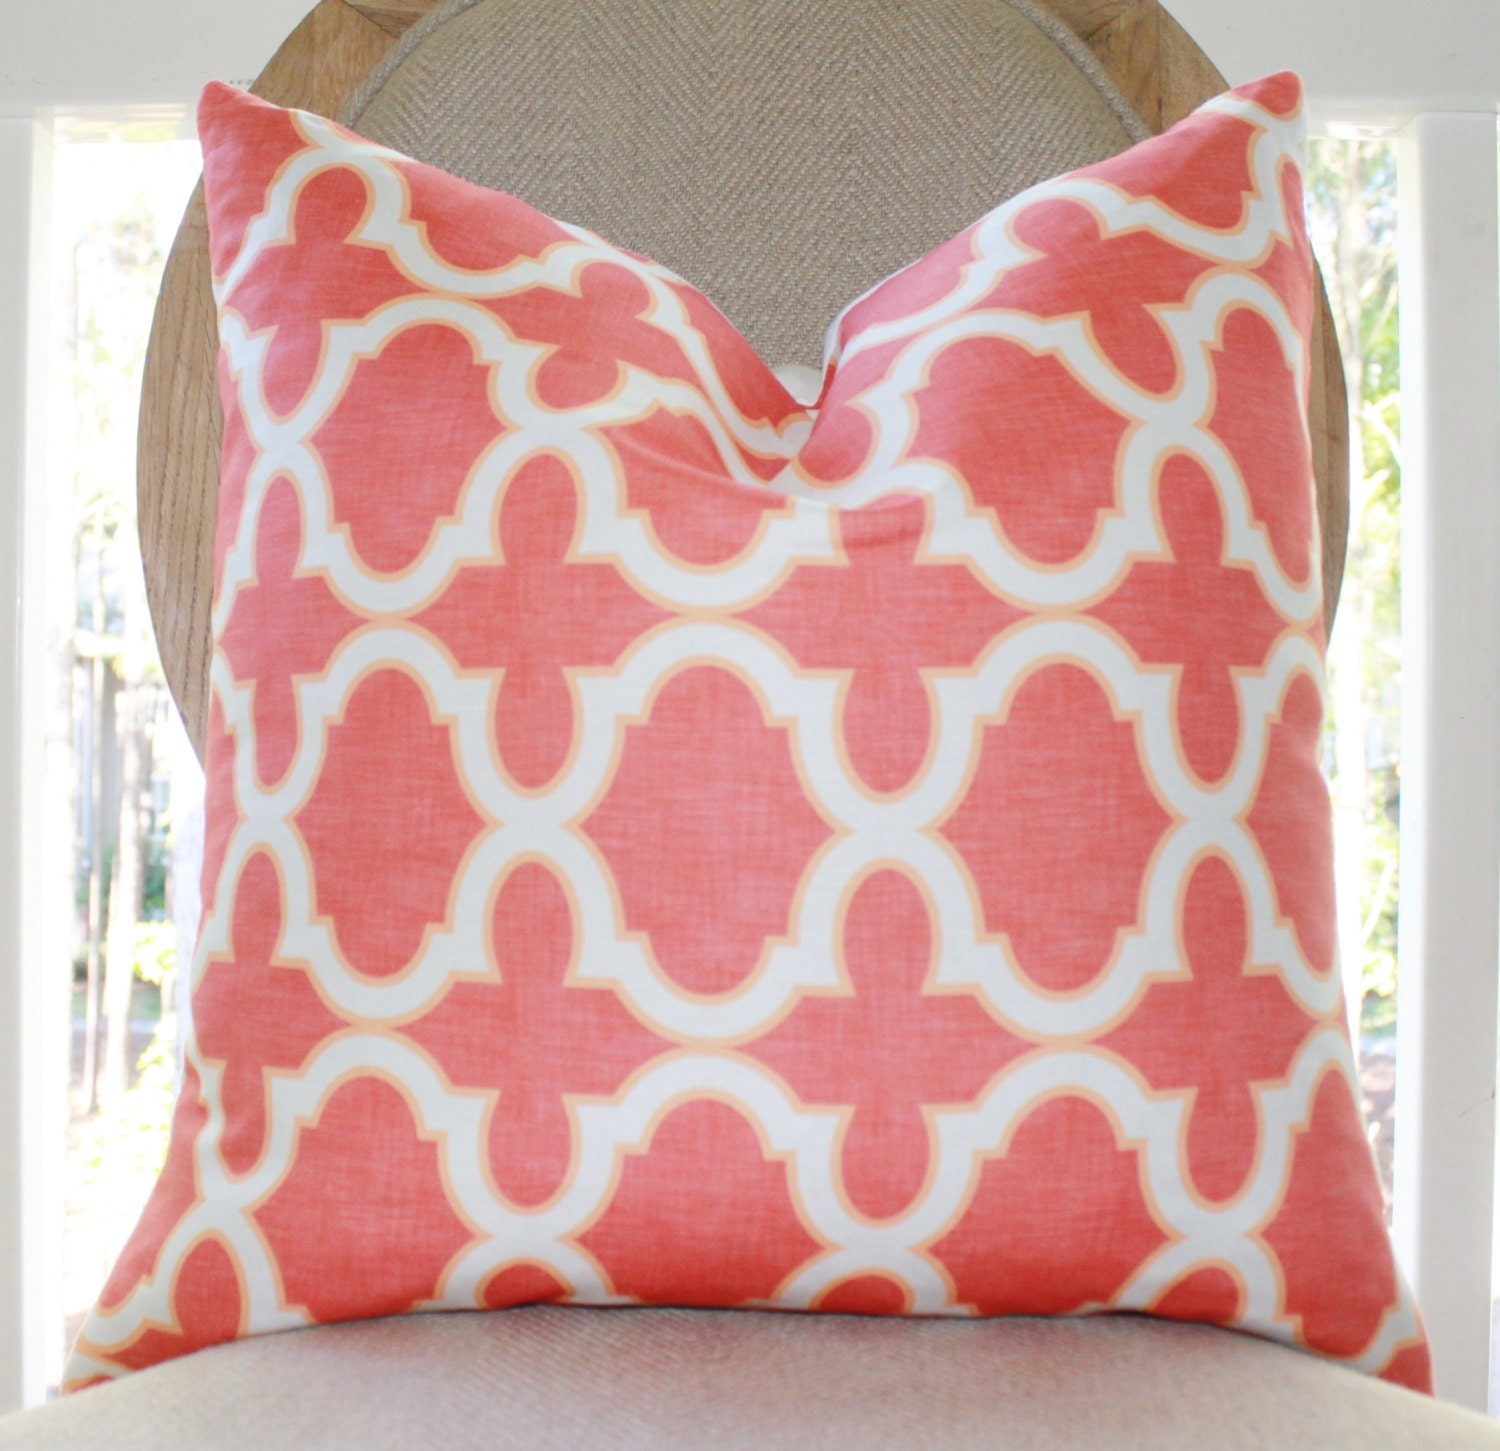 Coral Quatrefoil Pillow - Coral and Orange Quatrefoil Geometric Trellis Designer Cover -Decorative  Throw Pillow